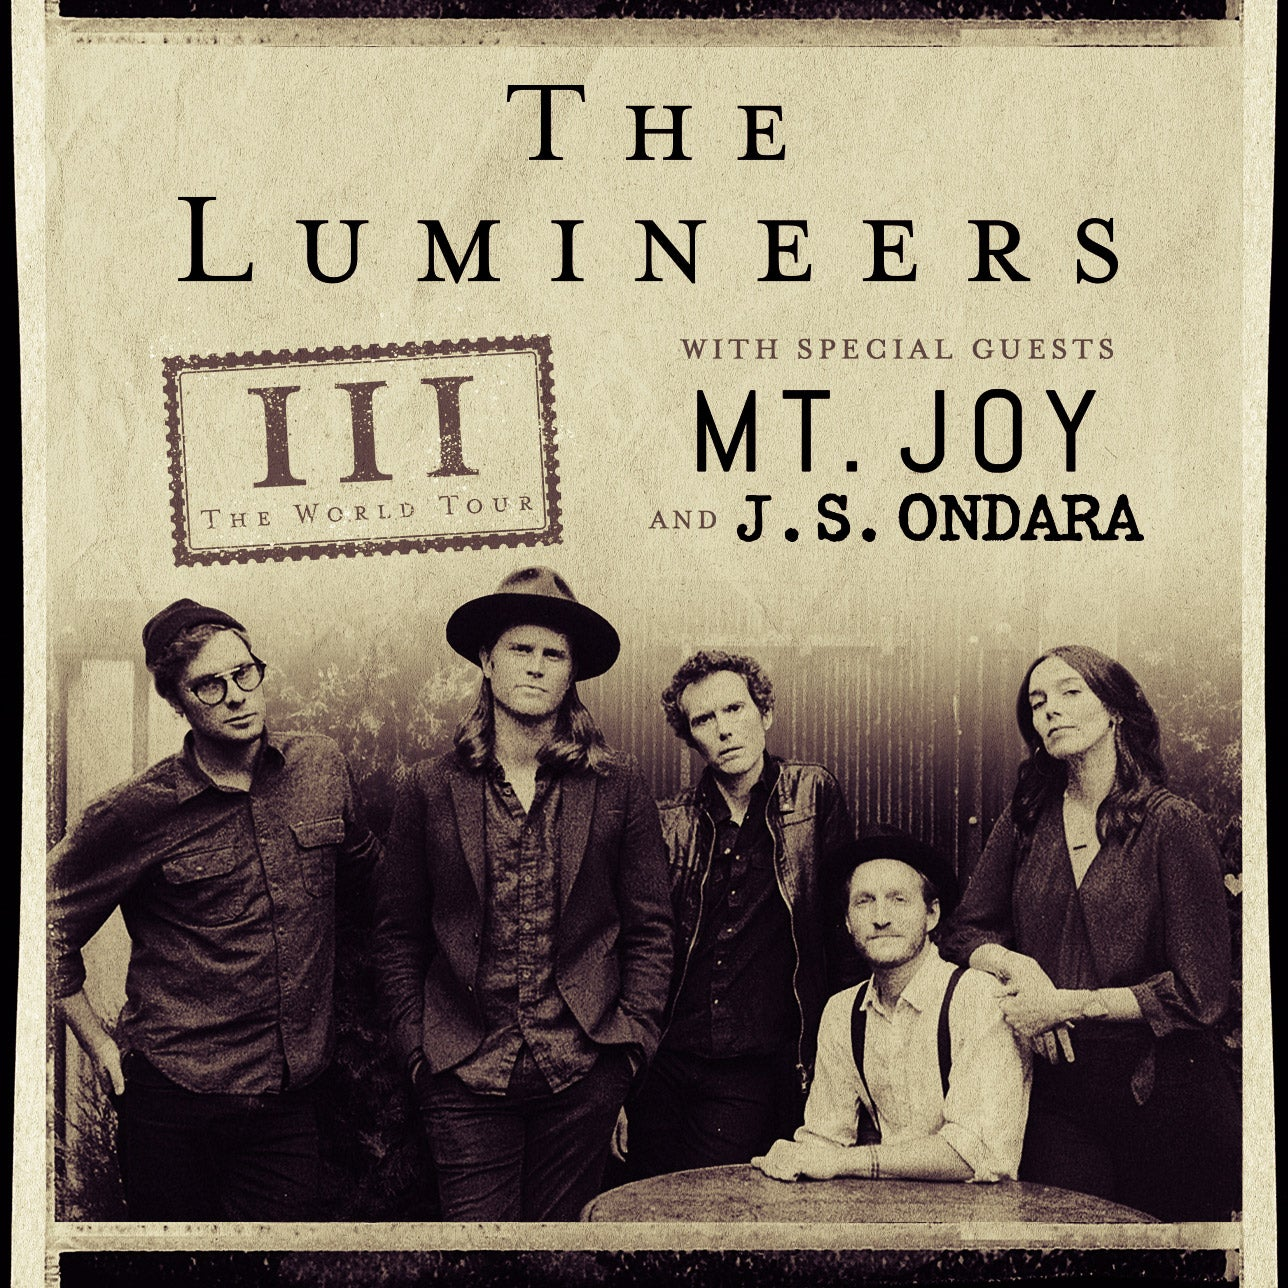 Postponed – The Lumineers – New Date TBD